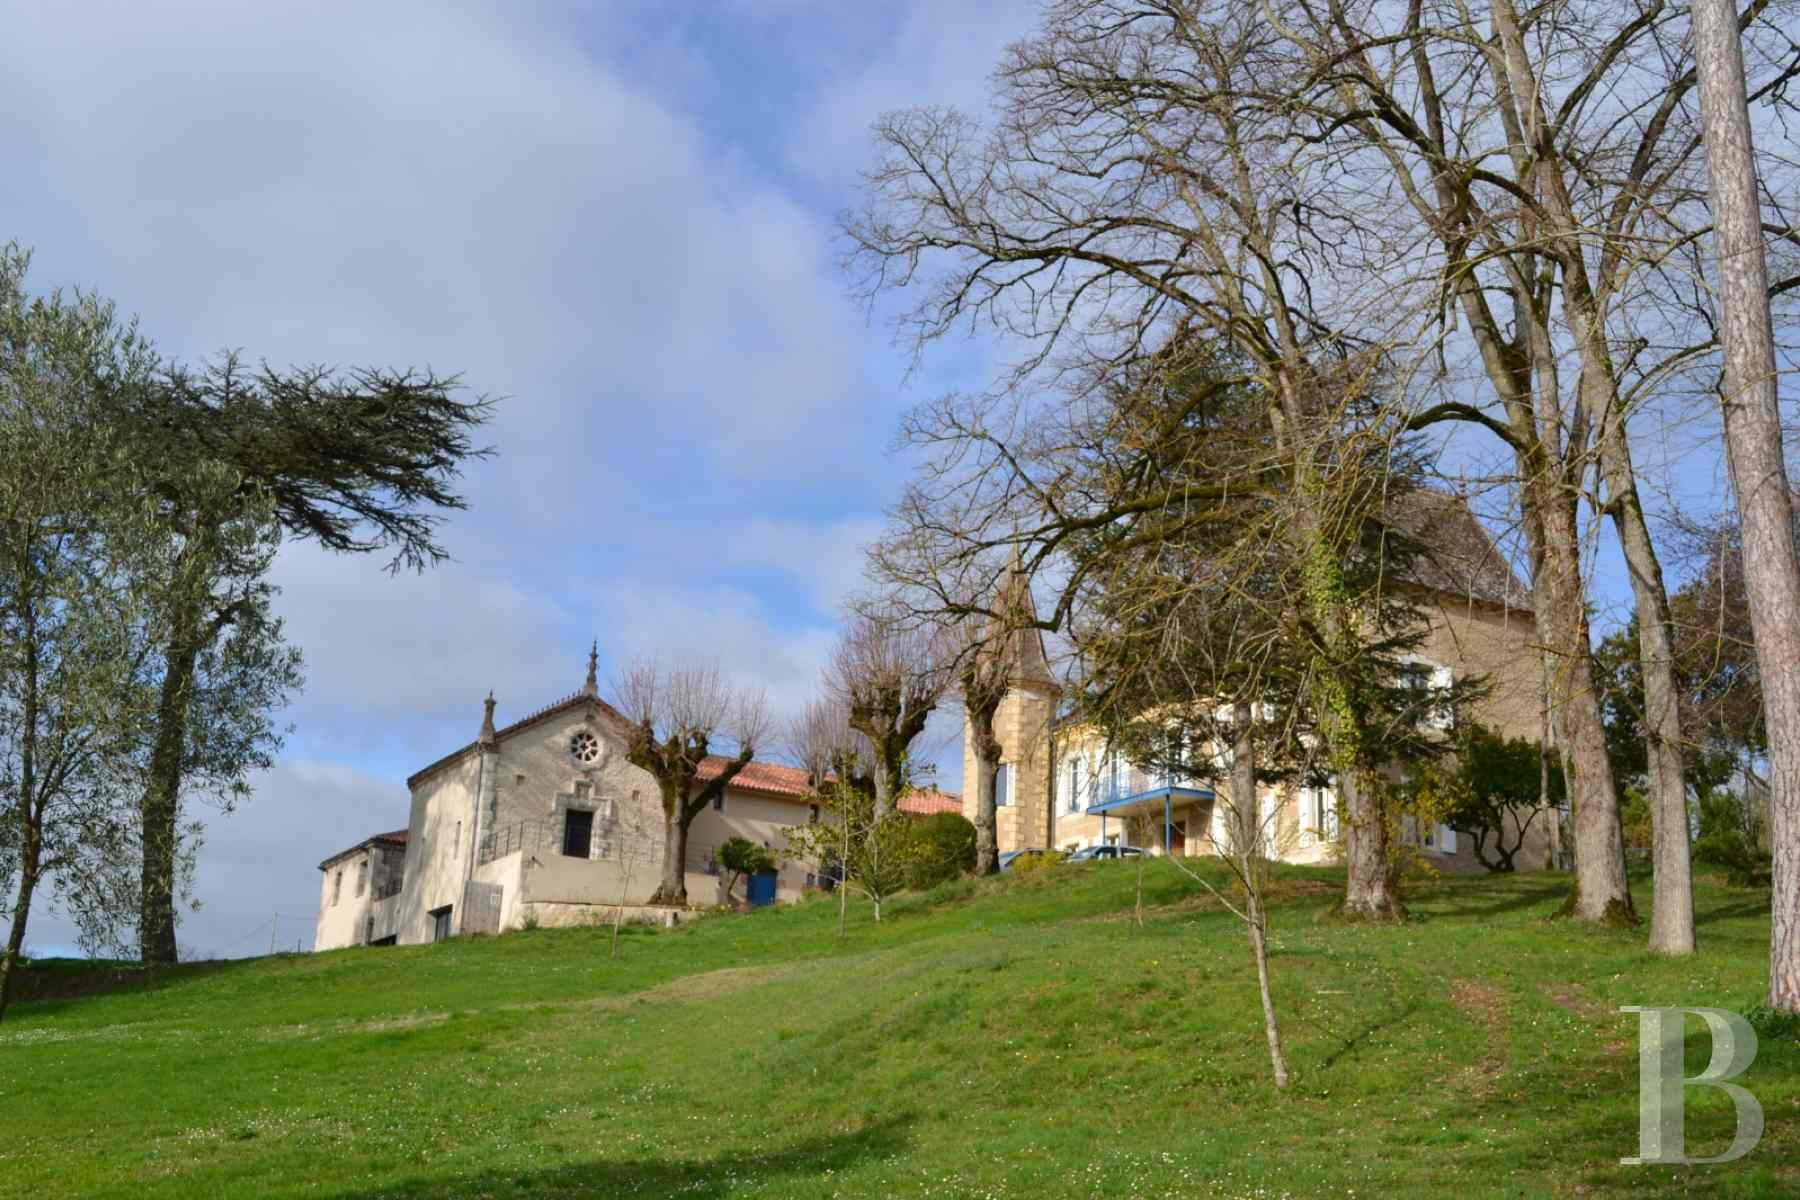 chateaux for sale France aquitaine property gers - 4 zoom